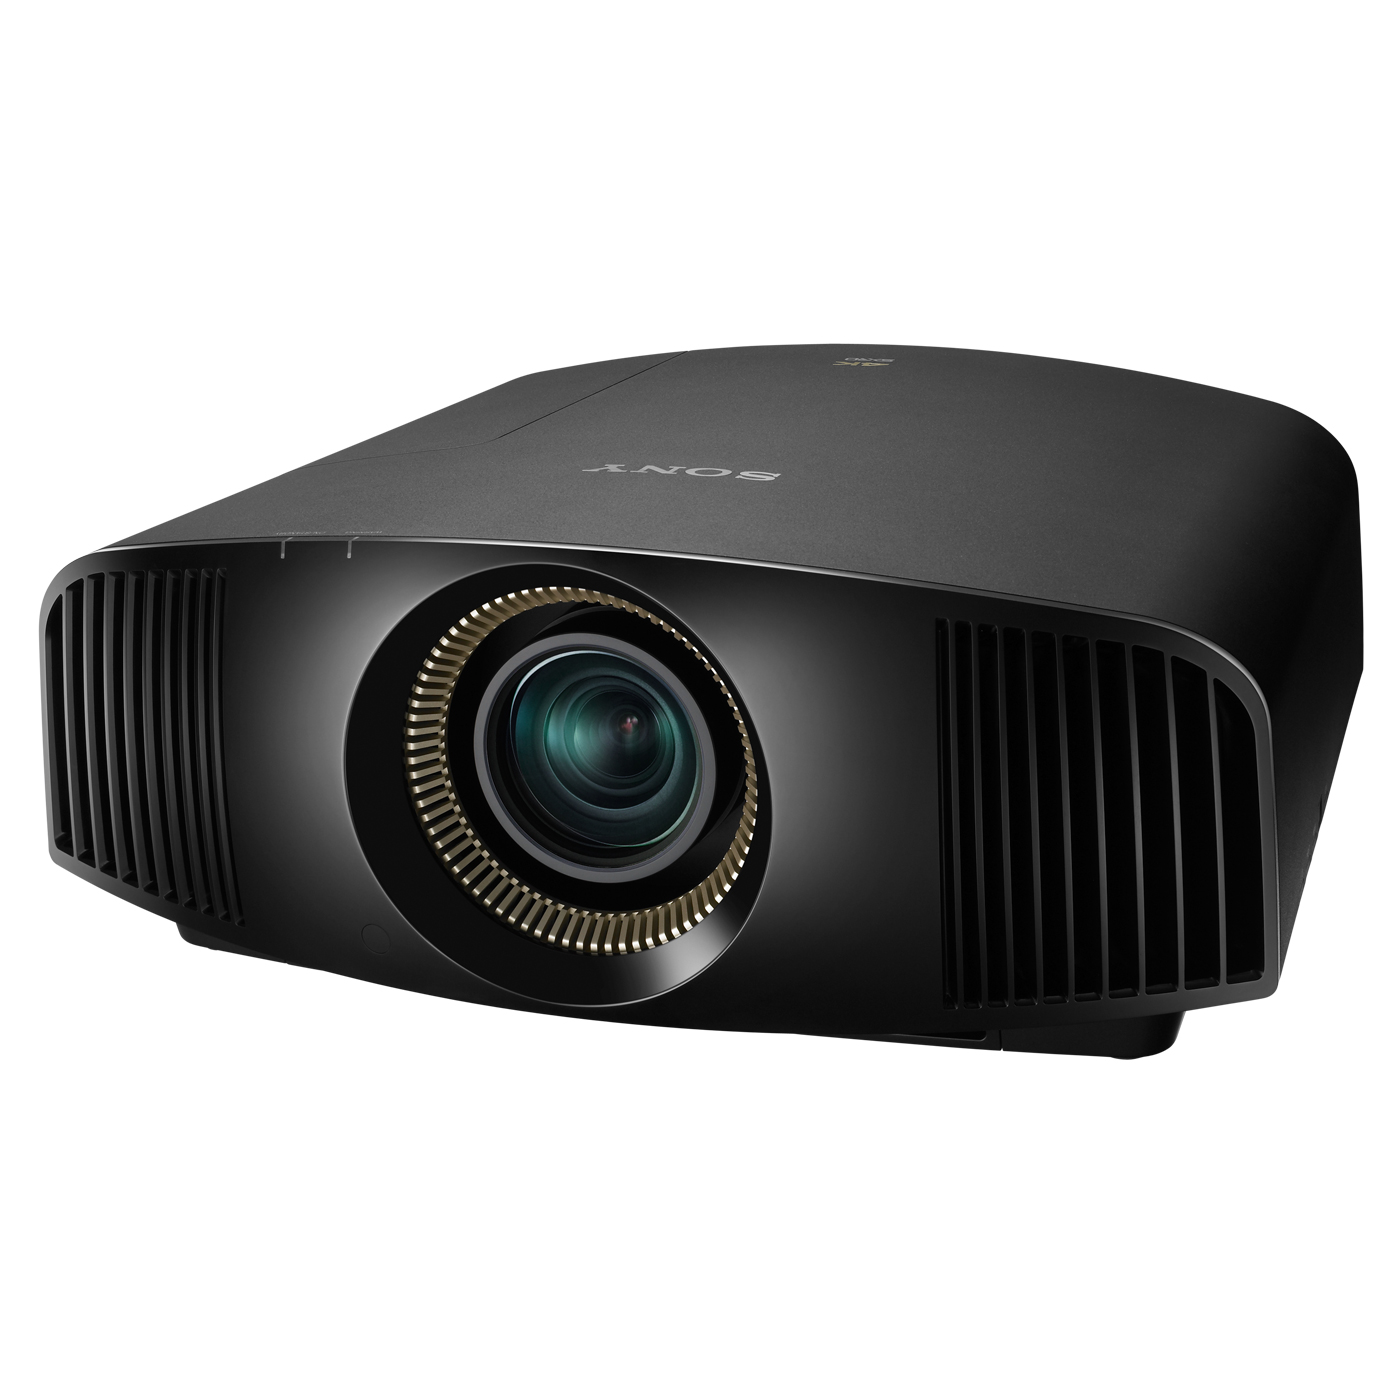 Sony VPL-VW365ES Compact 4K Home Theater ES Projector by Sony